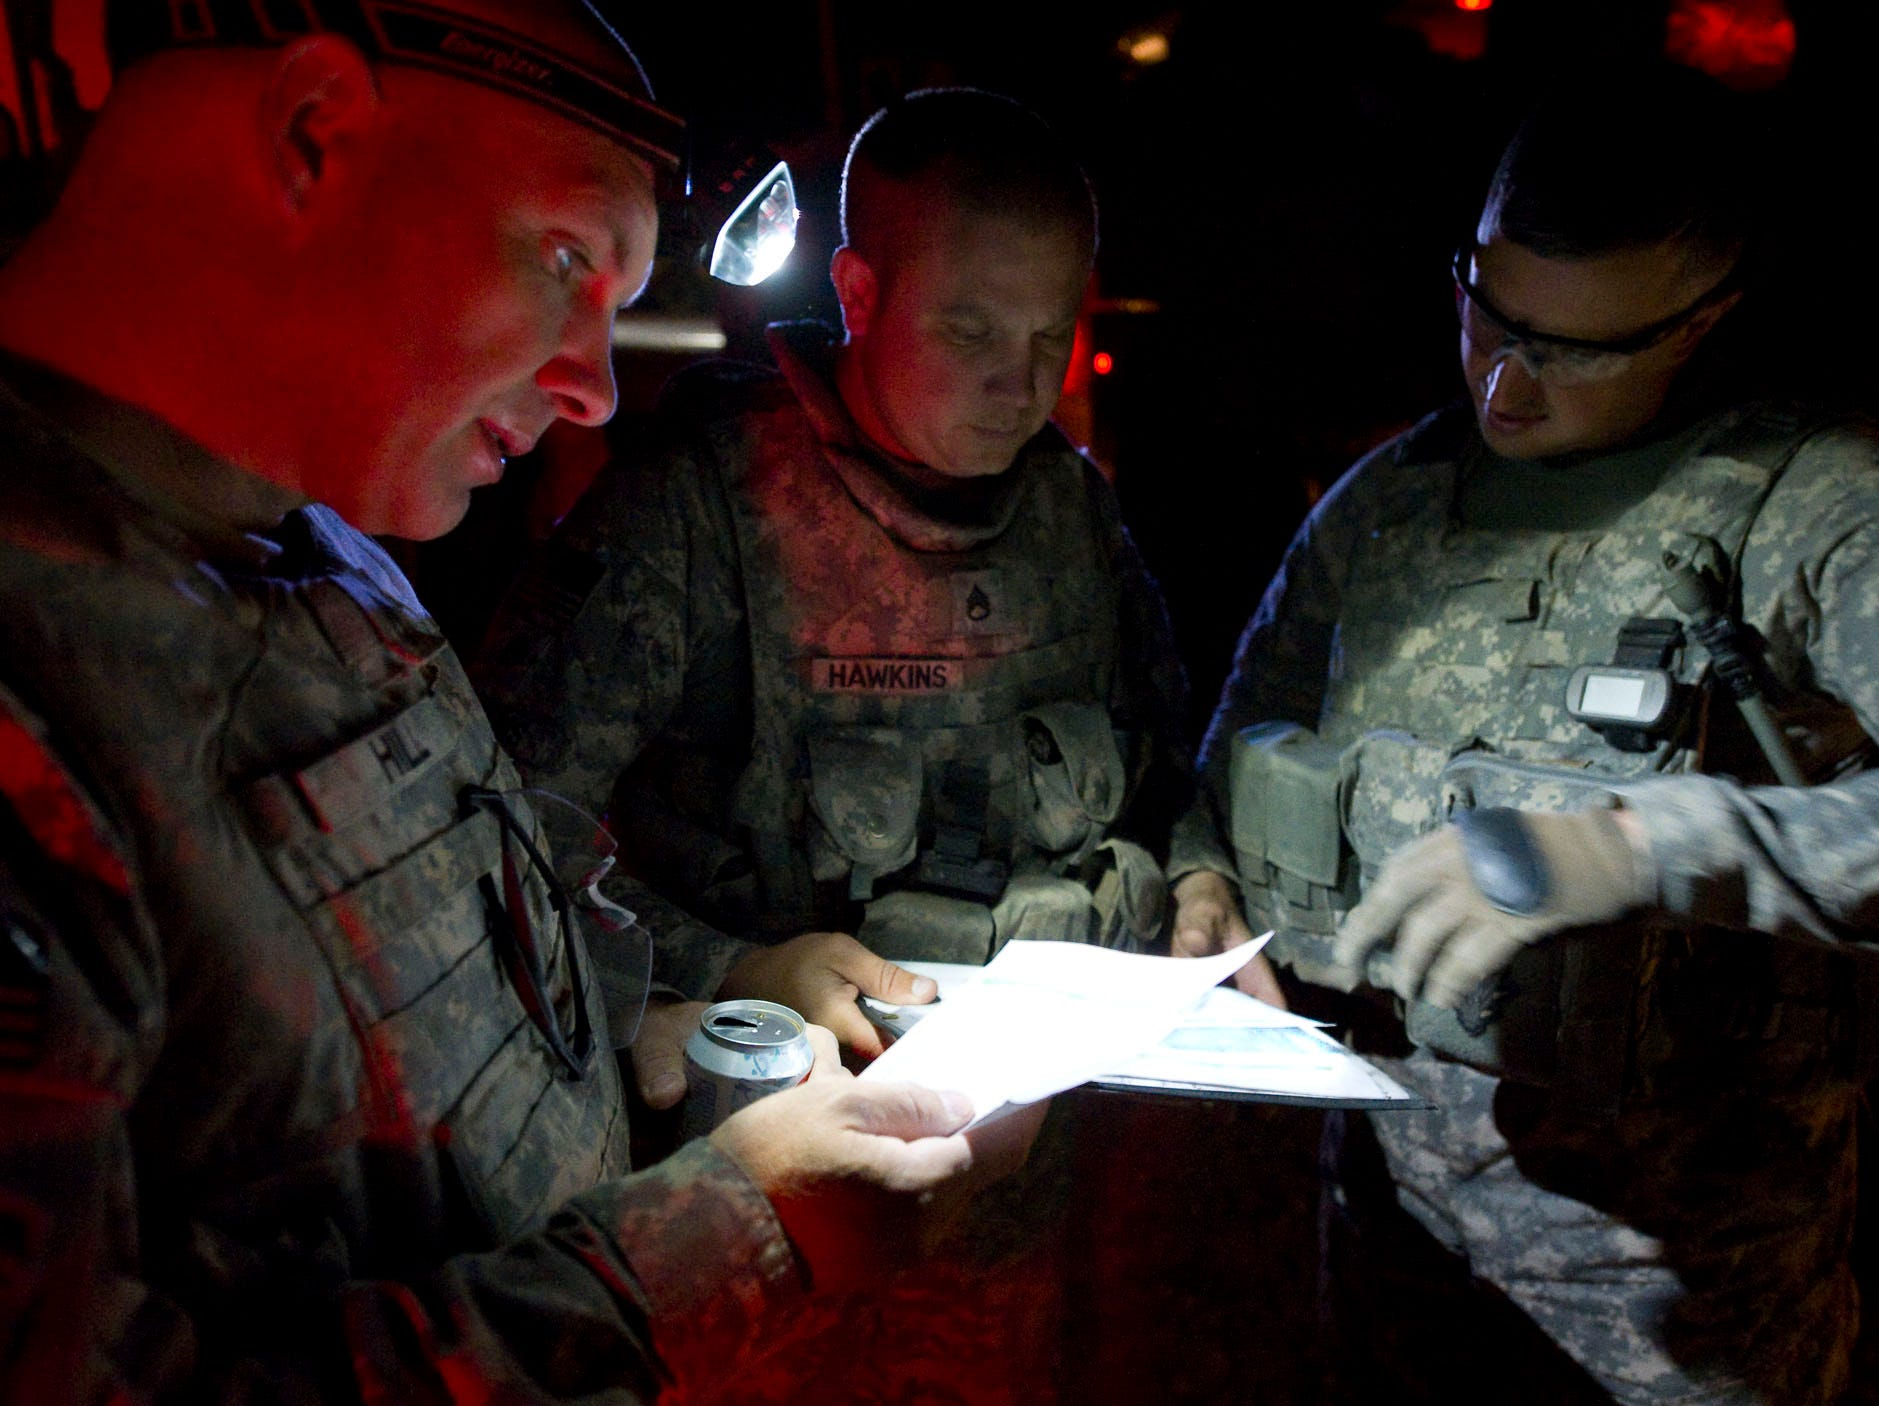 From left, Vermont National Guard Sgt. 1st Class Matthew Hill of St. Albans, Vt., Staff Sgt. Scott Hawkins of East Montpelier, Vt., and 1st Sgt. Eric Duncan of Northfield, Vt., go over plans to raid a suspected weapons and IED cache early Friday morning, September 17, 2010, at Forward Operating Base Gardez in Paktia Province. The raid was delayed after Afghan Uniformed Police postponed the operation saying they had no units available due to election preparations.